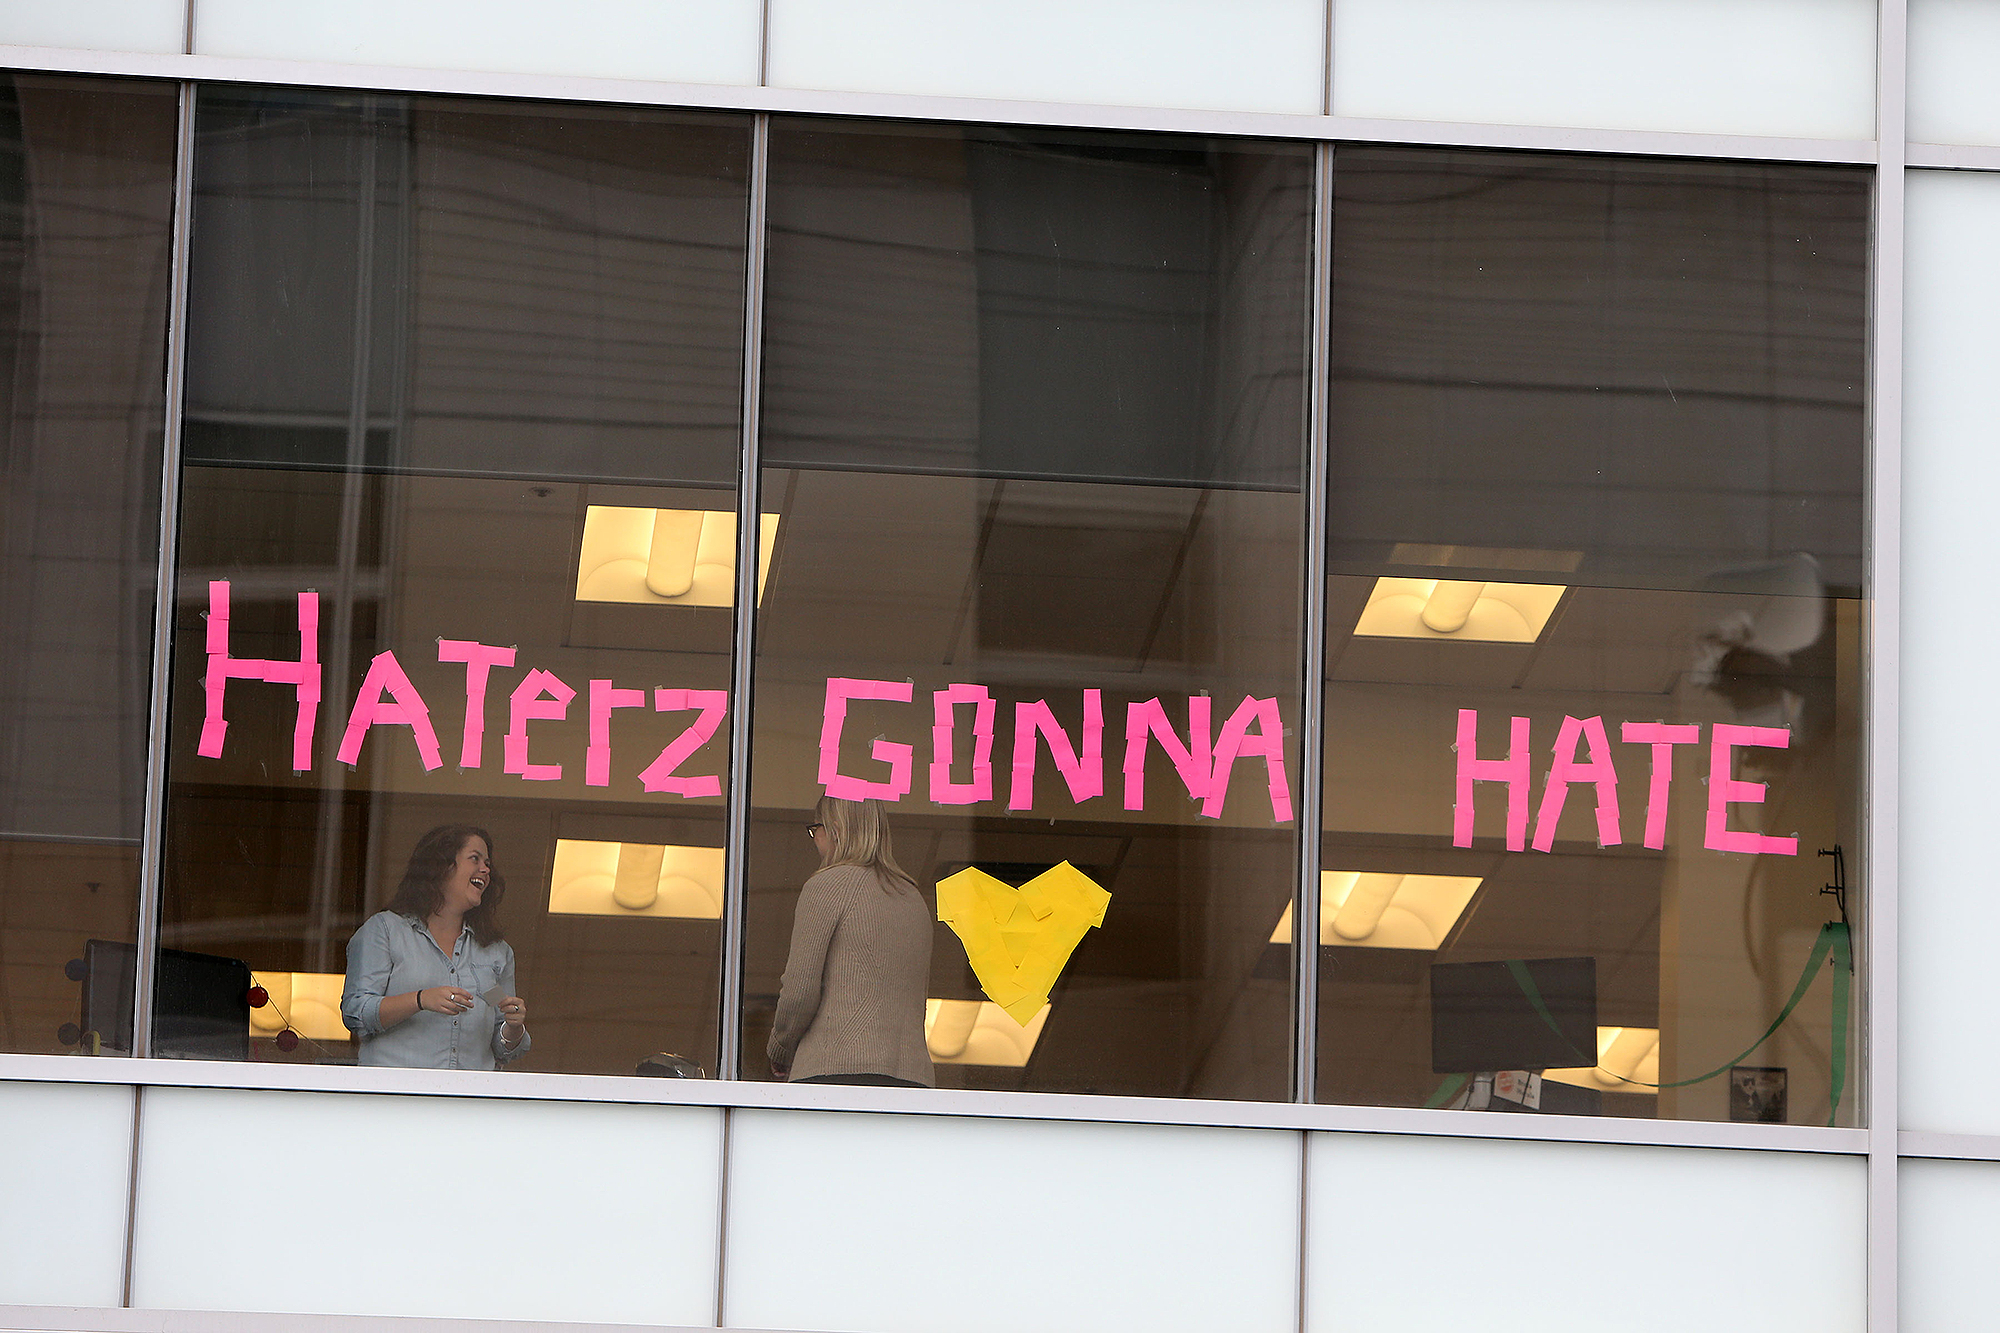 A 'Haterz Gonna Hate' sign appears in the office building opposite the court where the Taylor Swift trial continues in Denver, Colorado.